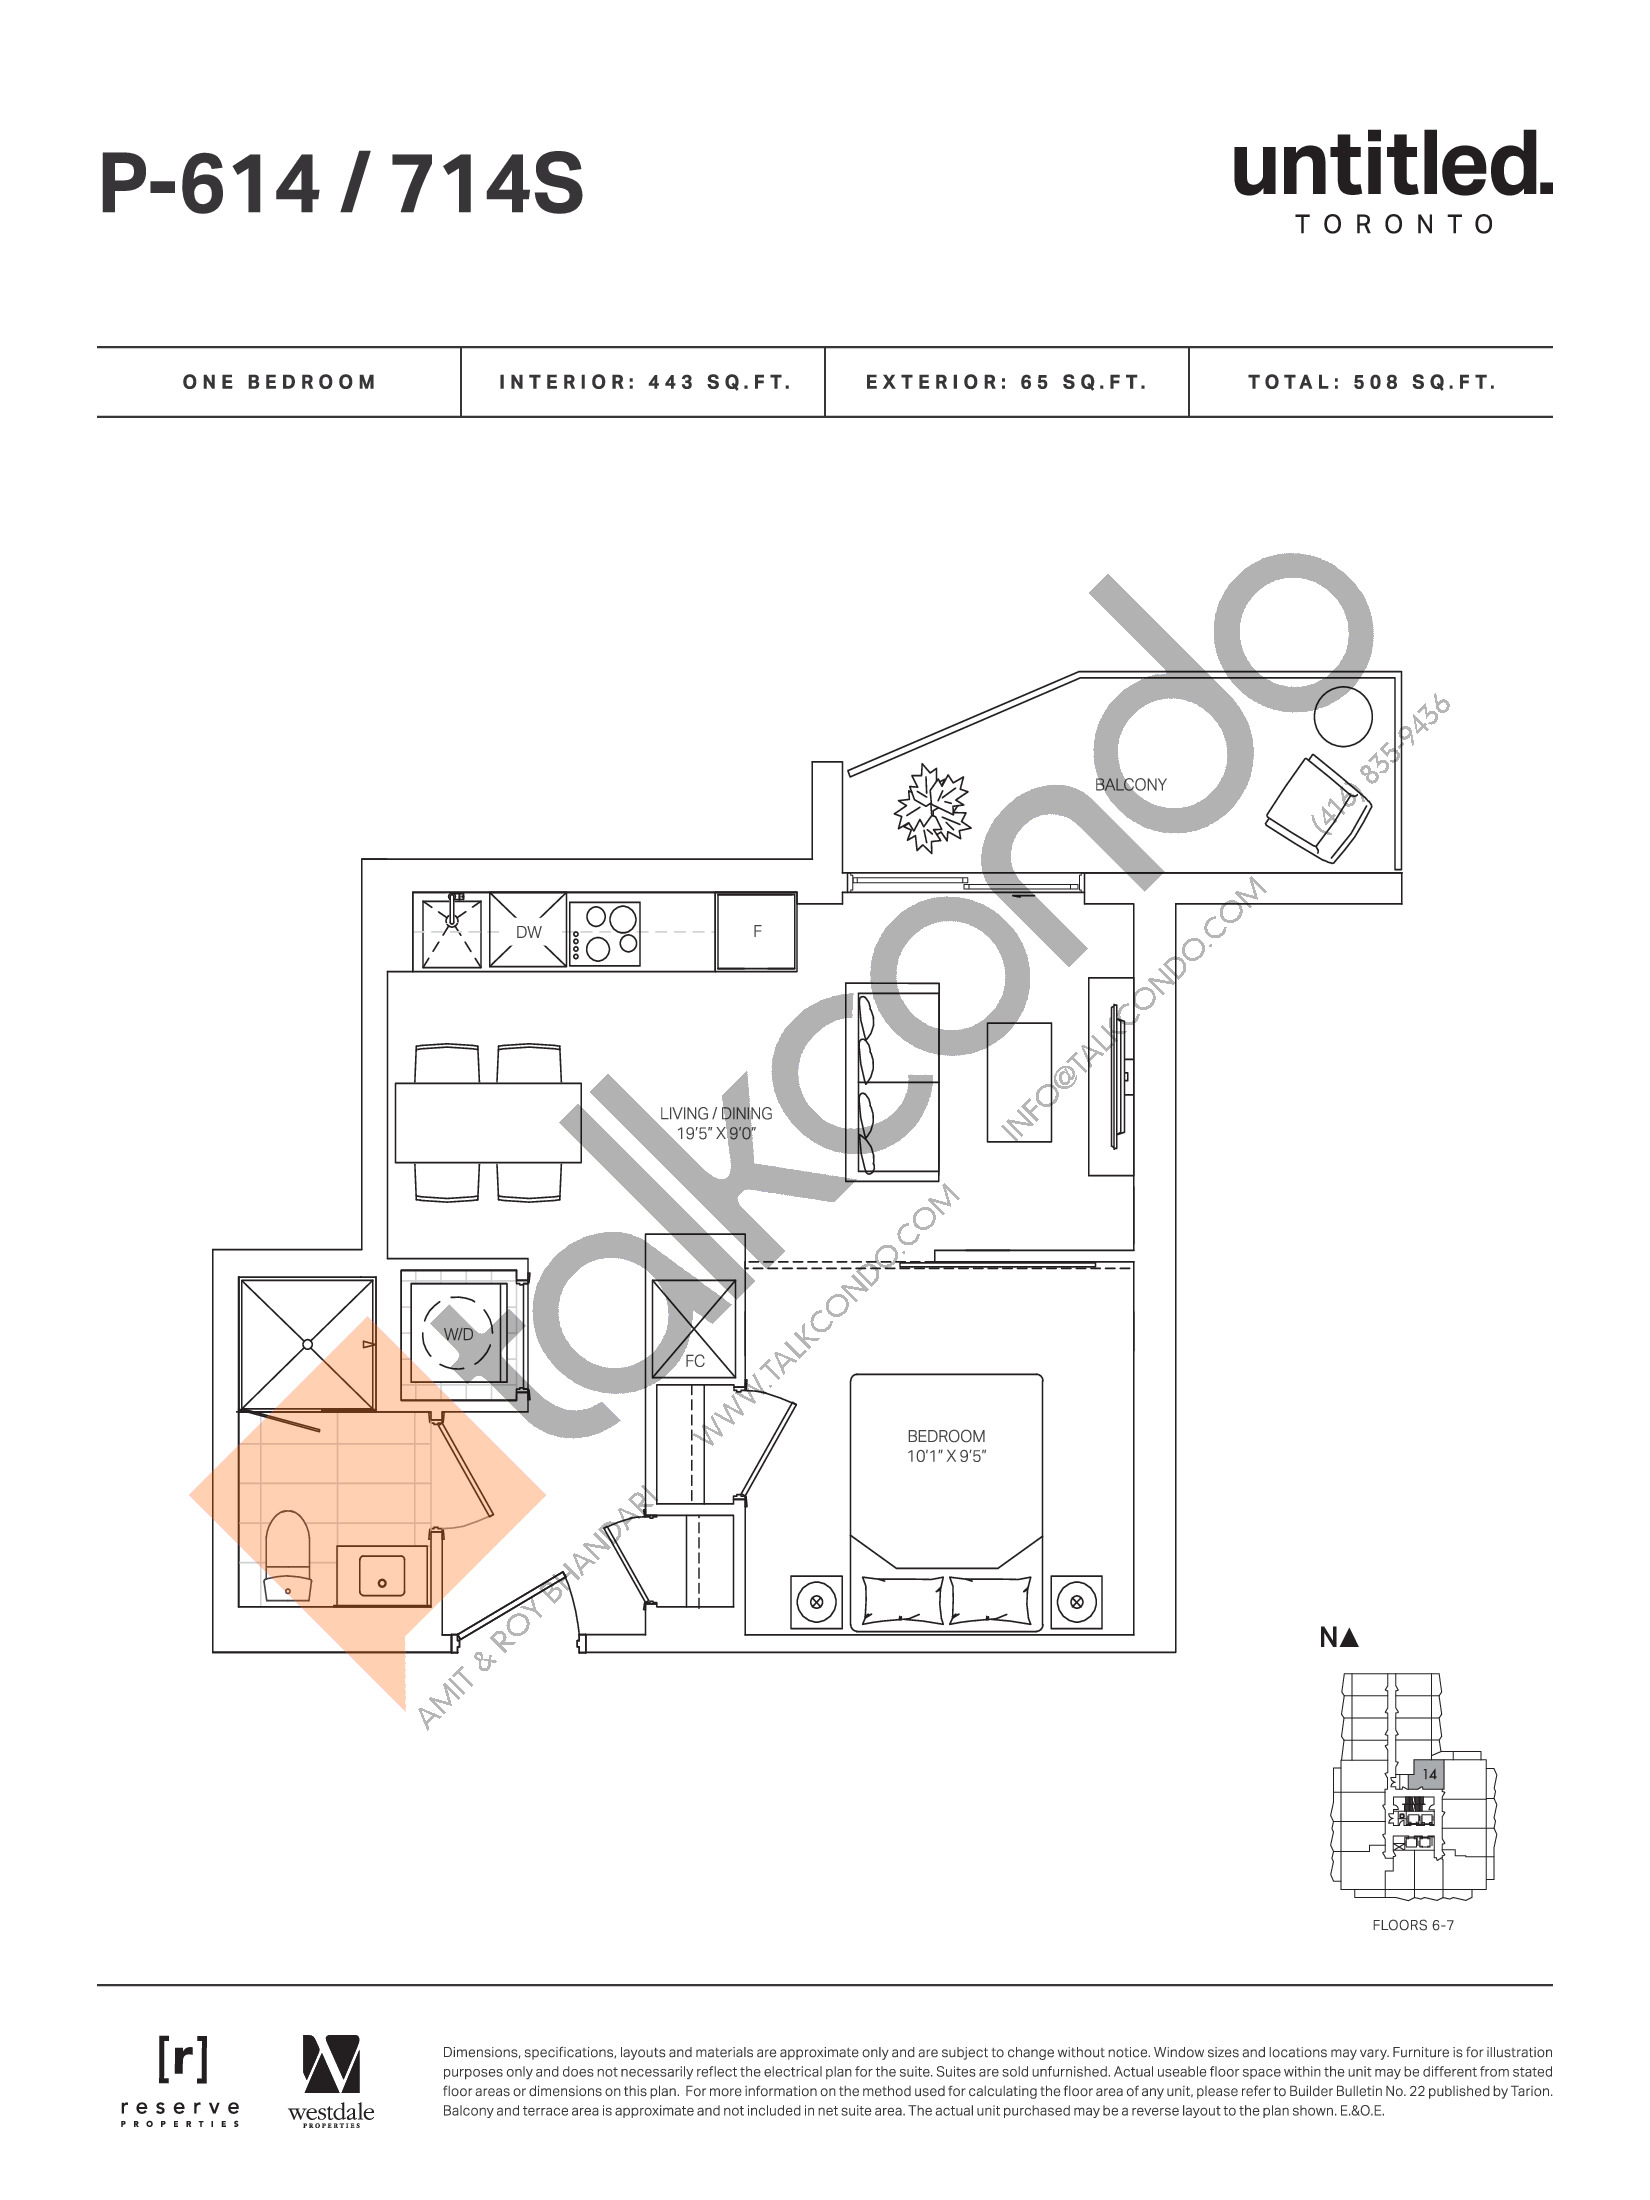 P-614 / 714S Floor Plan at Untitled Toronto Condos - 443 sq.ft